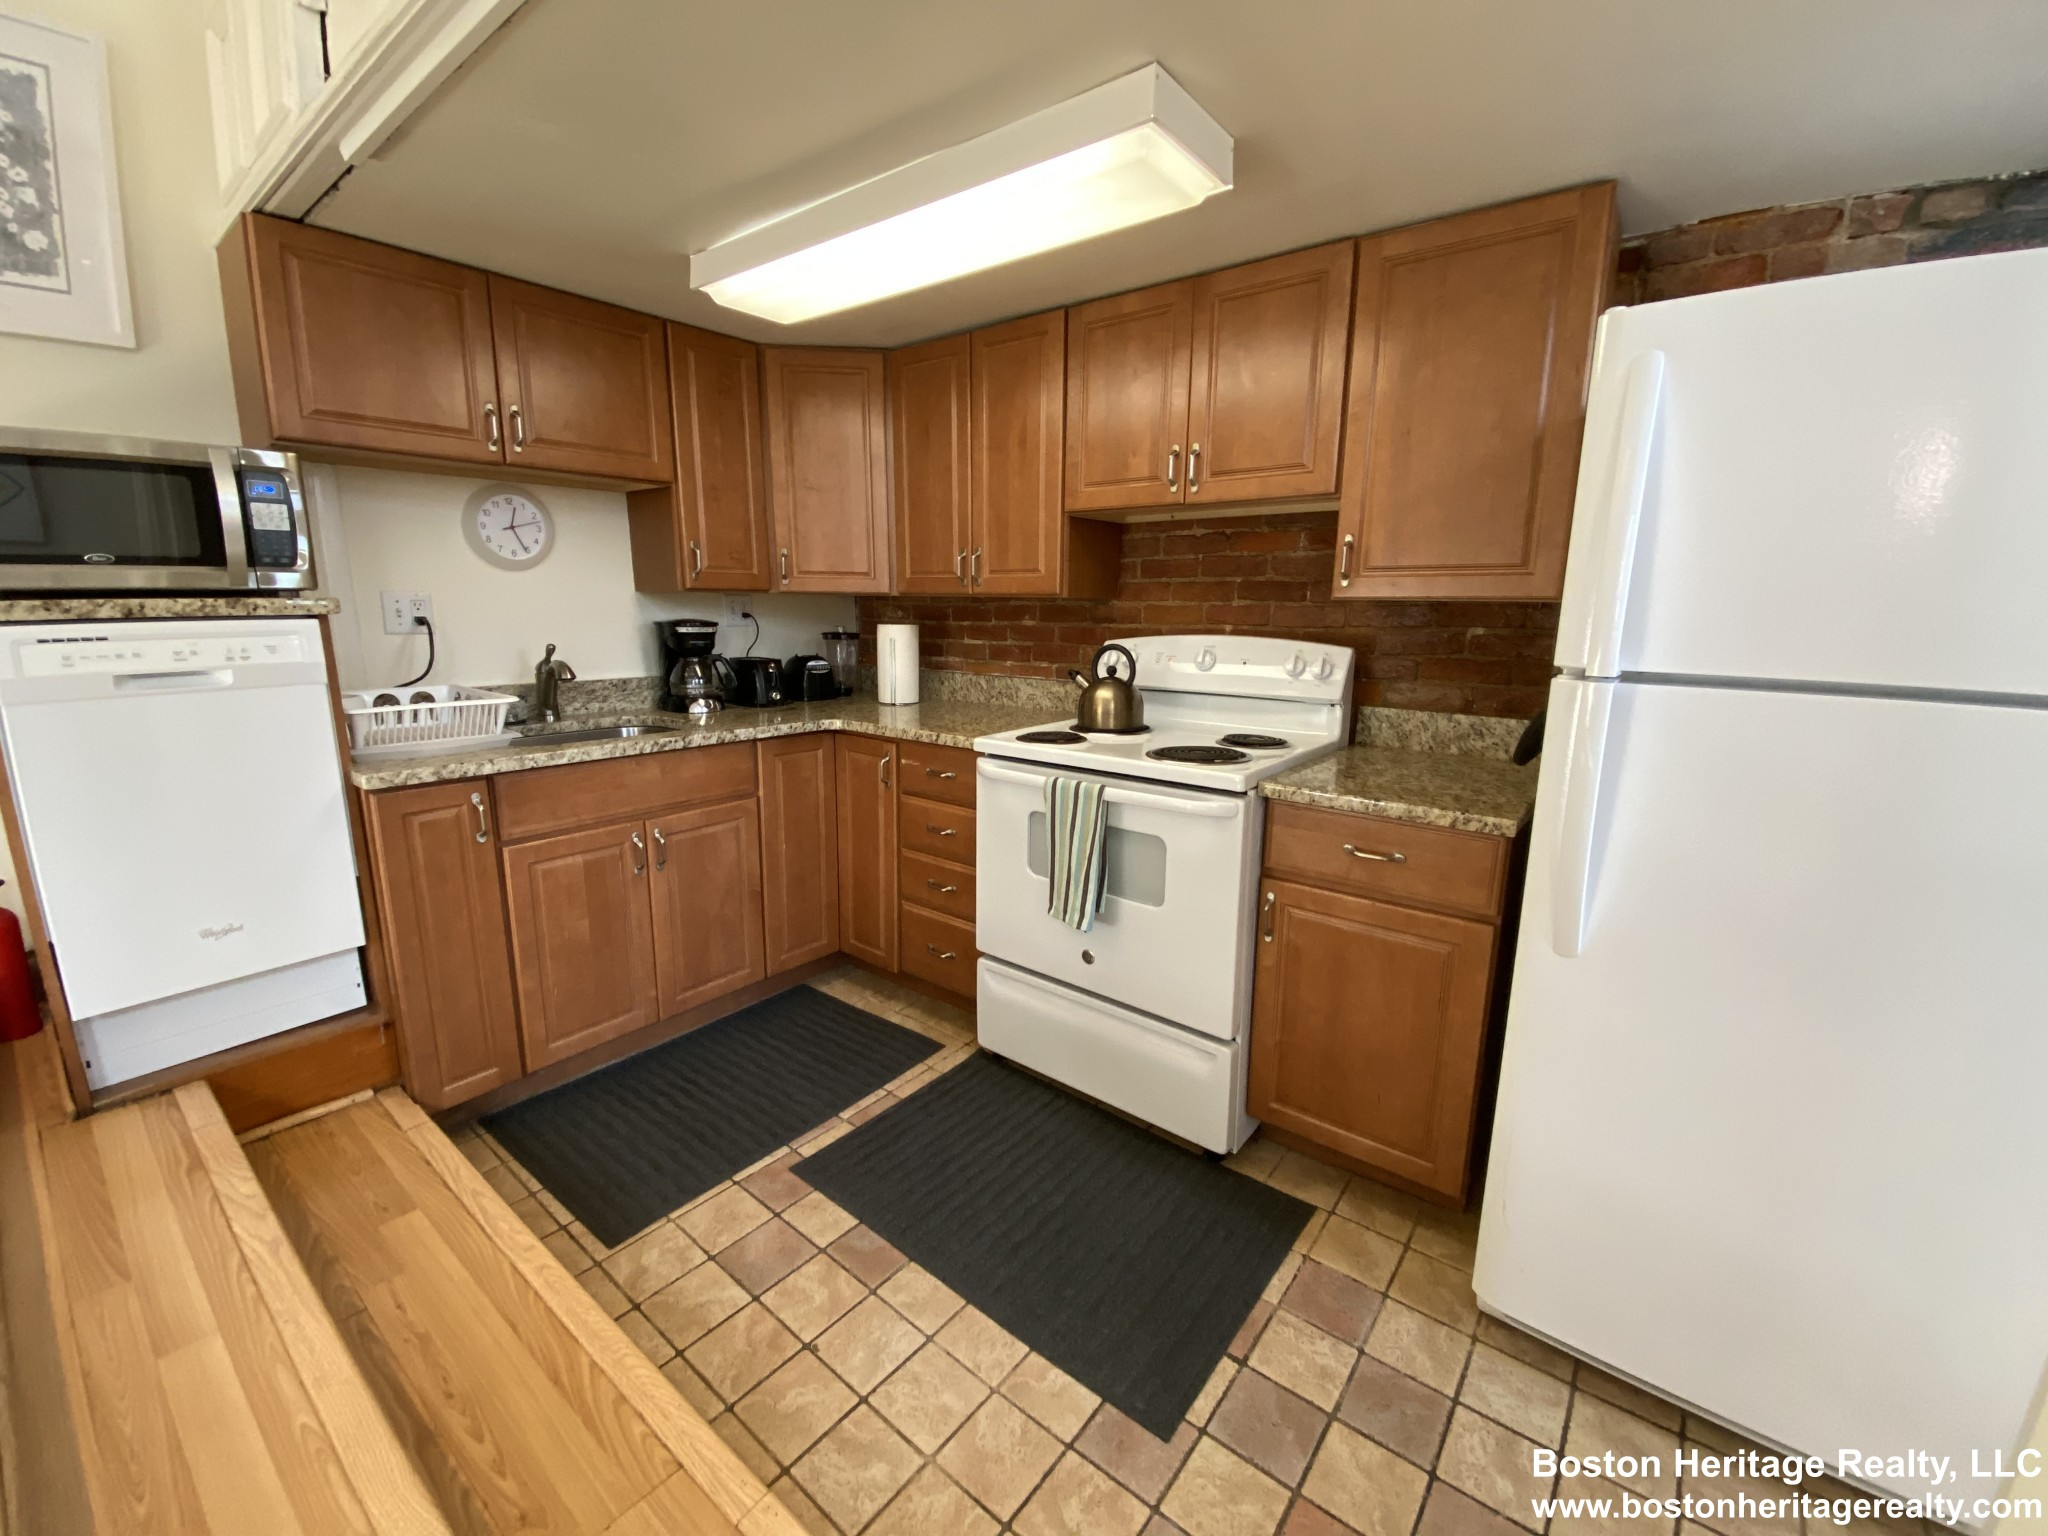 2 Beds, 1 Bath apartment in Boston, South End for $1,950